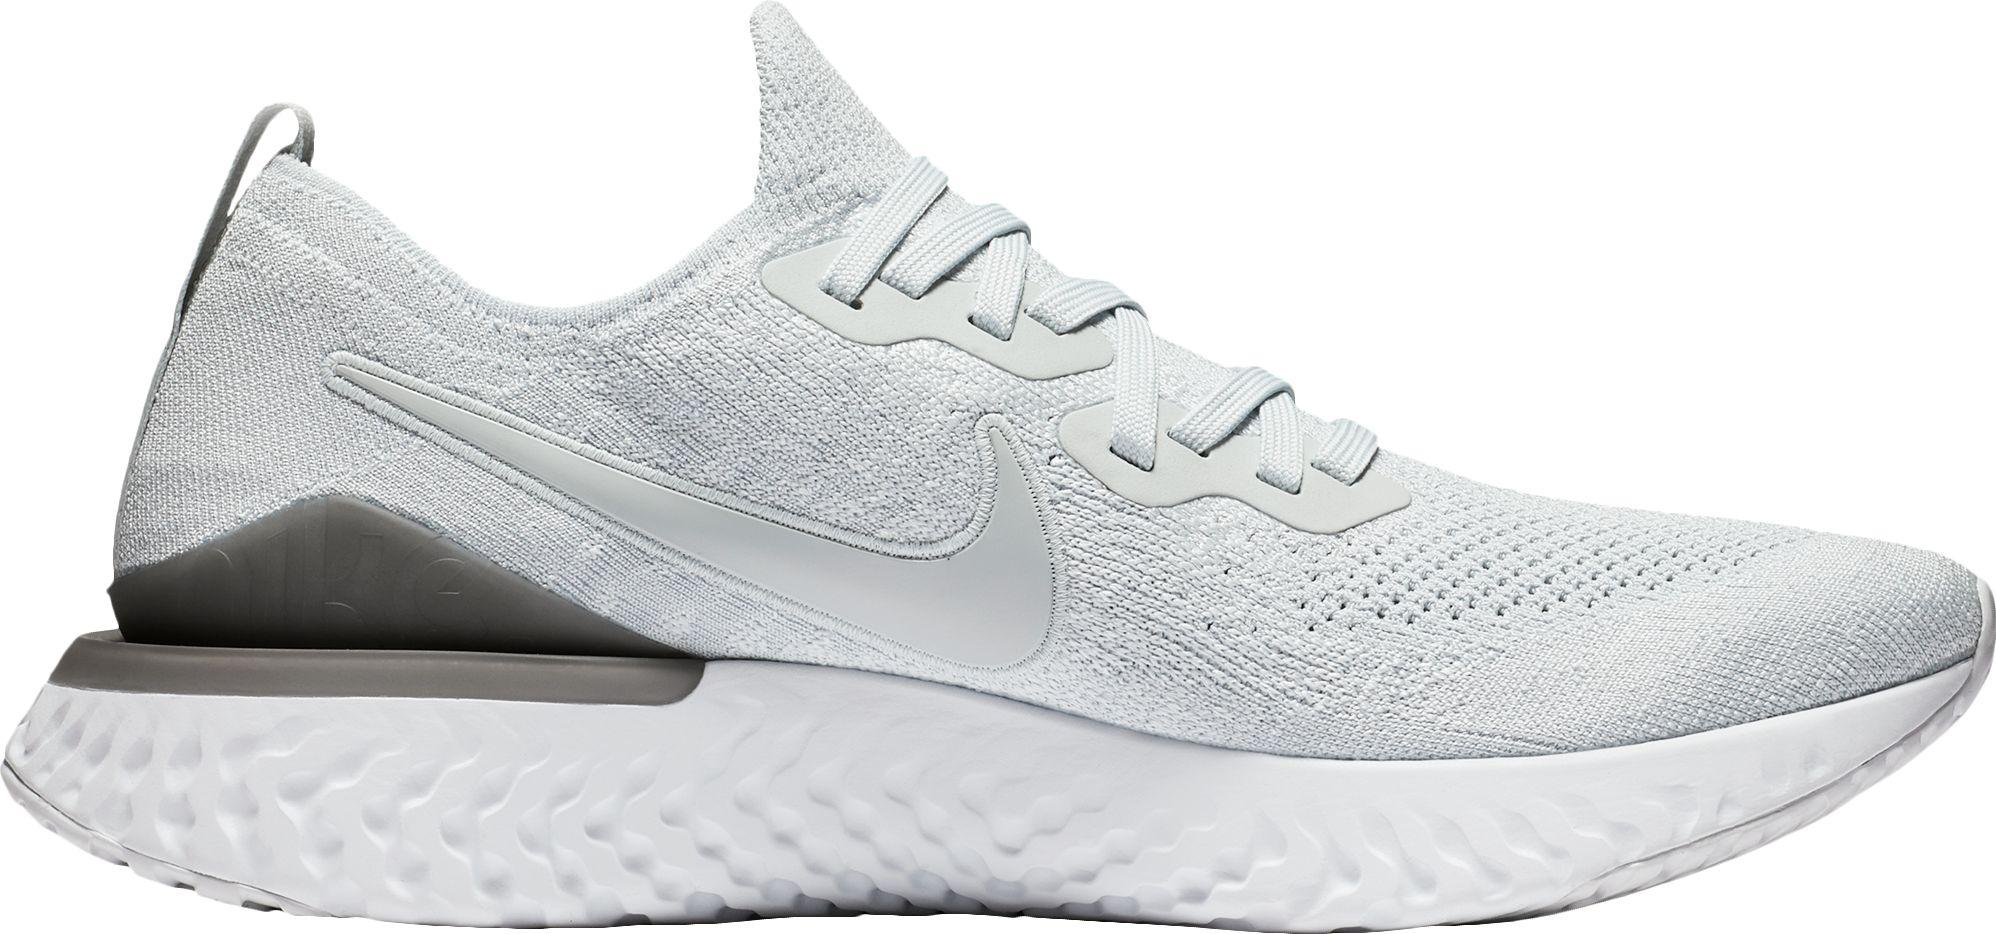 b480aa13bf67 Nike - Multicolor Epic React Flyknit 2 Running Shoes for Men - Lyst